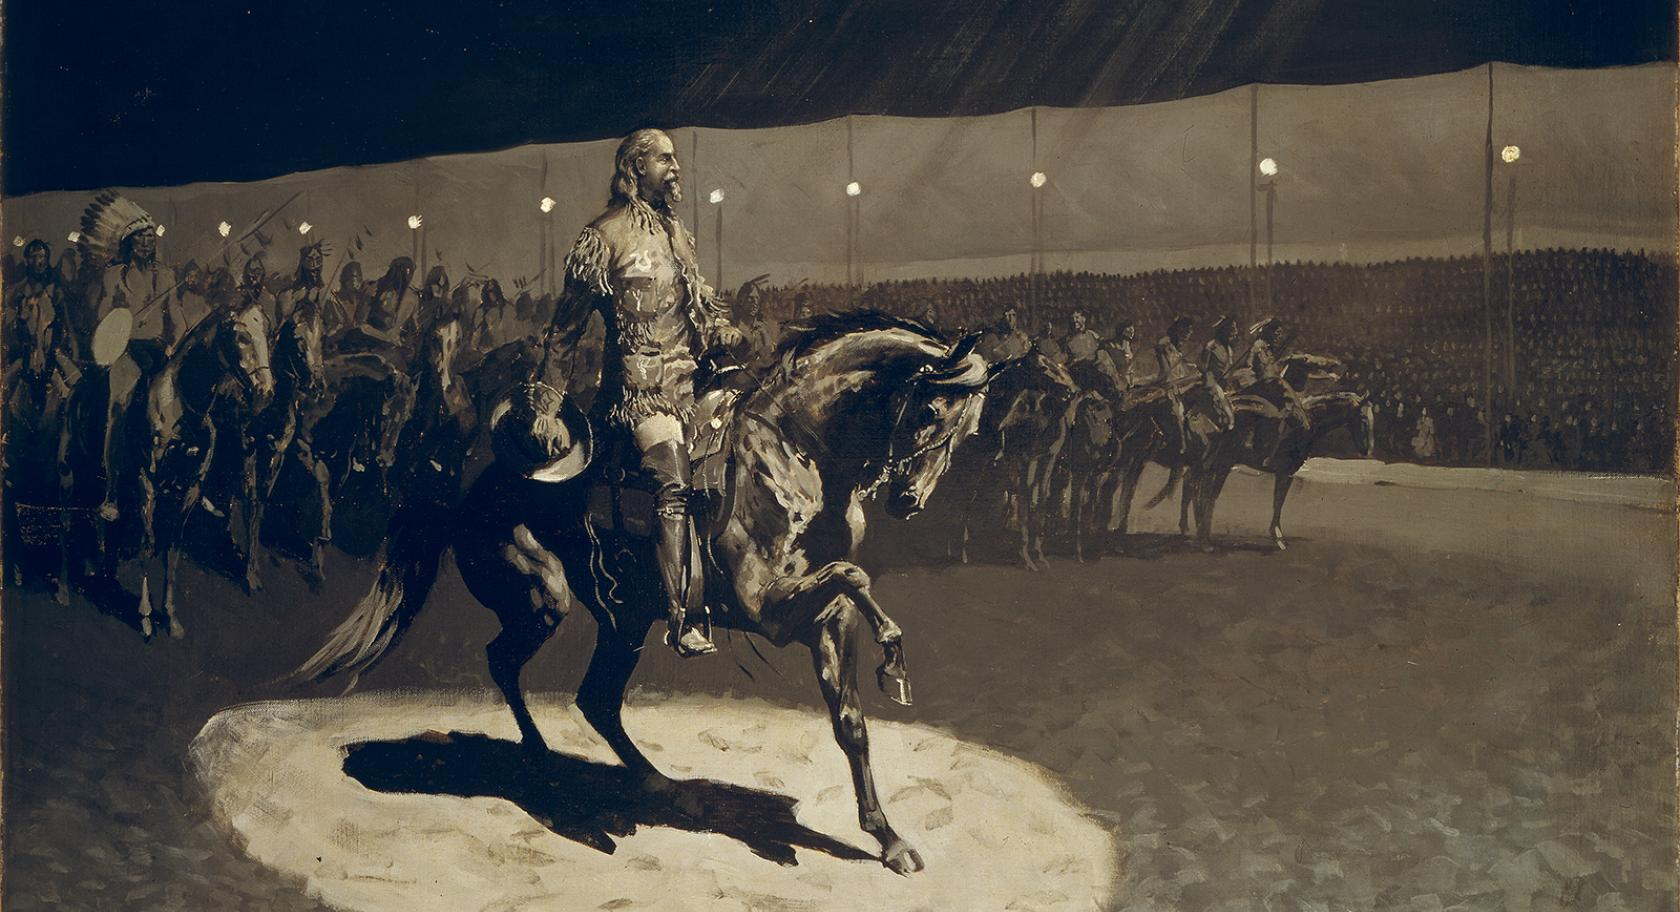 Frederic Remington (American, 1861-1909), Buffalo Bill in the Limelight, ca. 1899 oil on canvas, 35.5 x 48.5 in. (frame), Buffalo Bill Center of the West, Cody, Wyoming, USA, Gift of The Coe Foundation, H. P. Skoglund, Ernest Goppert, Sr., and John S. Bugas 23.71